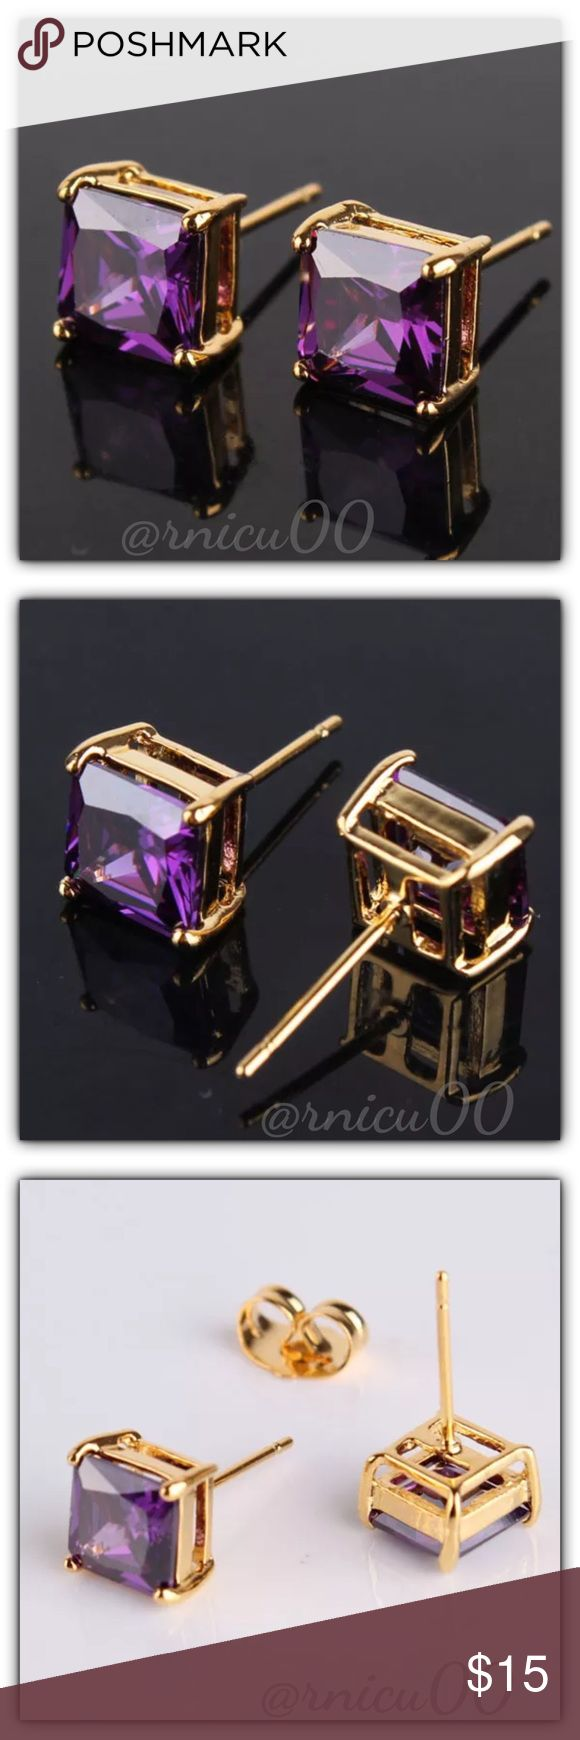 "🆕Fave RESTOCK!🆕Princess Amethyst Stud Earrings! These Princess Cut Earrings are Definitely a Favorite! Perfect Size 7mm (0.3"") Square Stones; Very Versatile, wear daily or Simple Classy! (gspa5-2717-0249)  🔆Part of ""Customer Favorite"" 1X Re-Stock Sale Event! 🔶100% of my Profit is being donated to Multiple Sclerosis (MS) Association - Please see last pic for Manufacturers description - Will ship Securely in Jewelry Box👌  *ALL items Marked at Absolute LOWEST Price unless Bundled! *NO…"